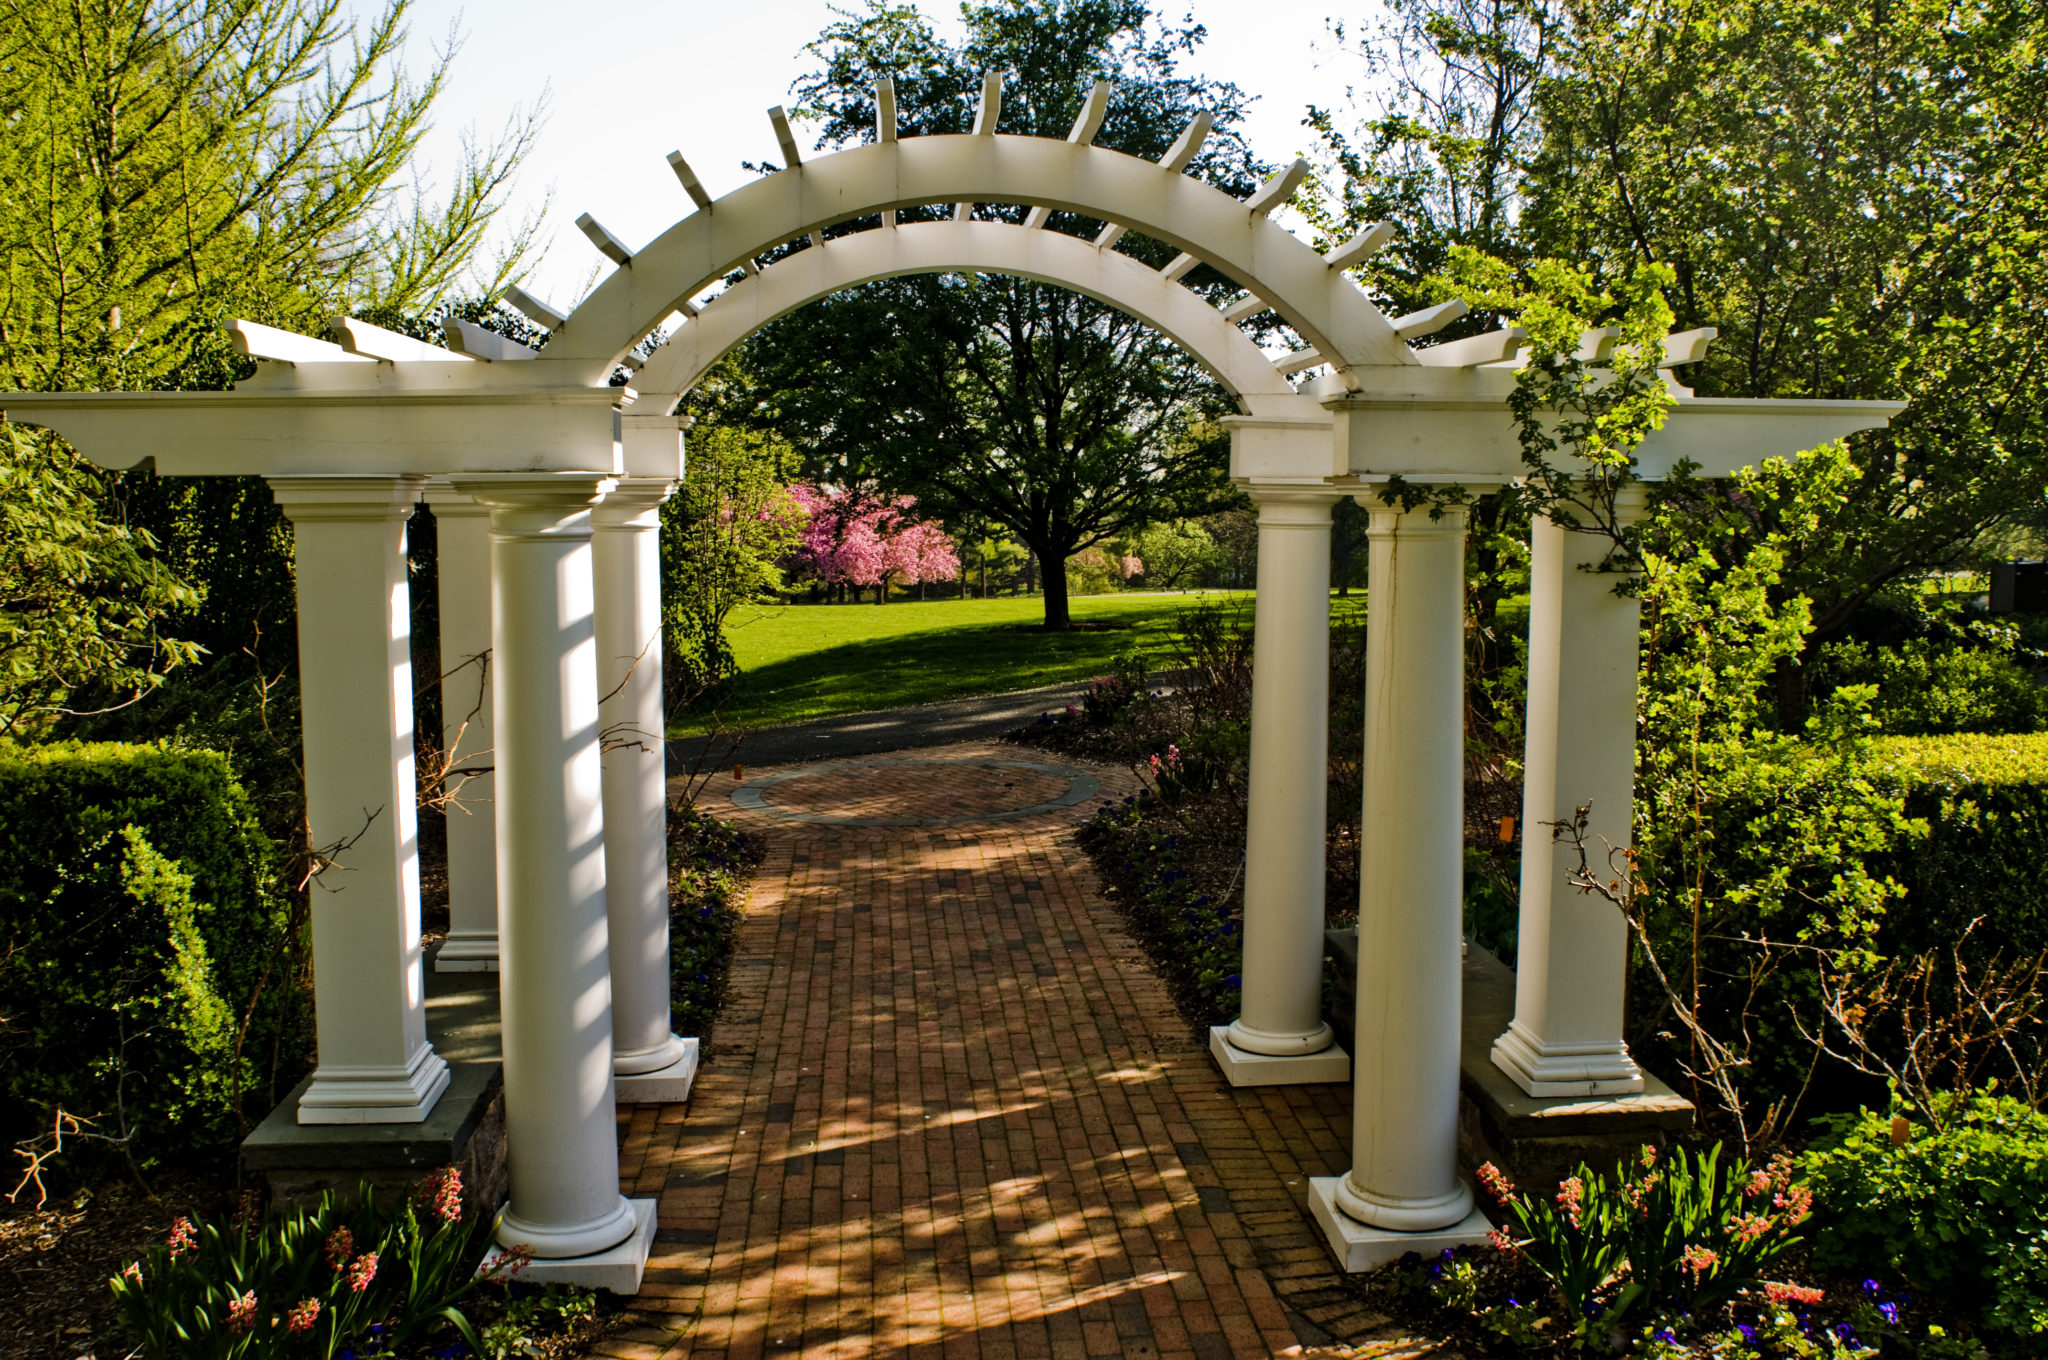 An external view of the white arbor and brick path at the Freylinghuysen arboritum.